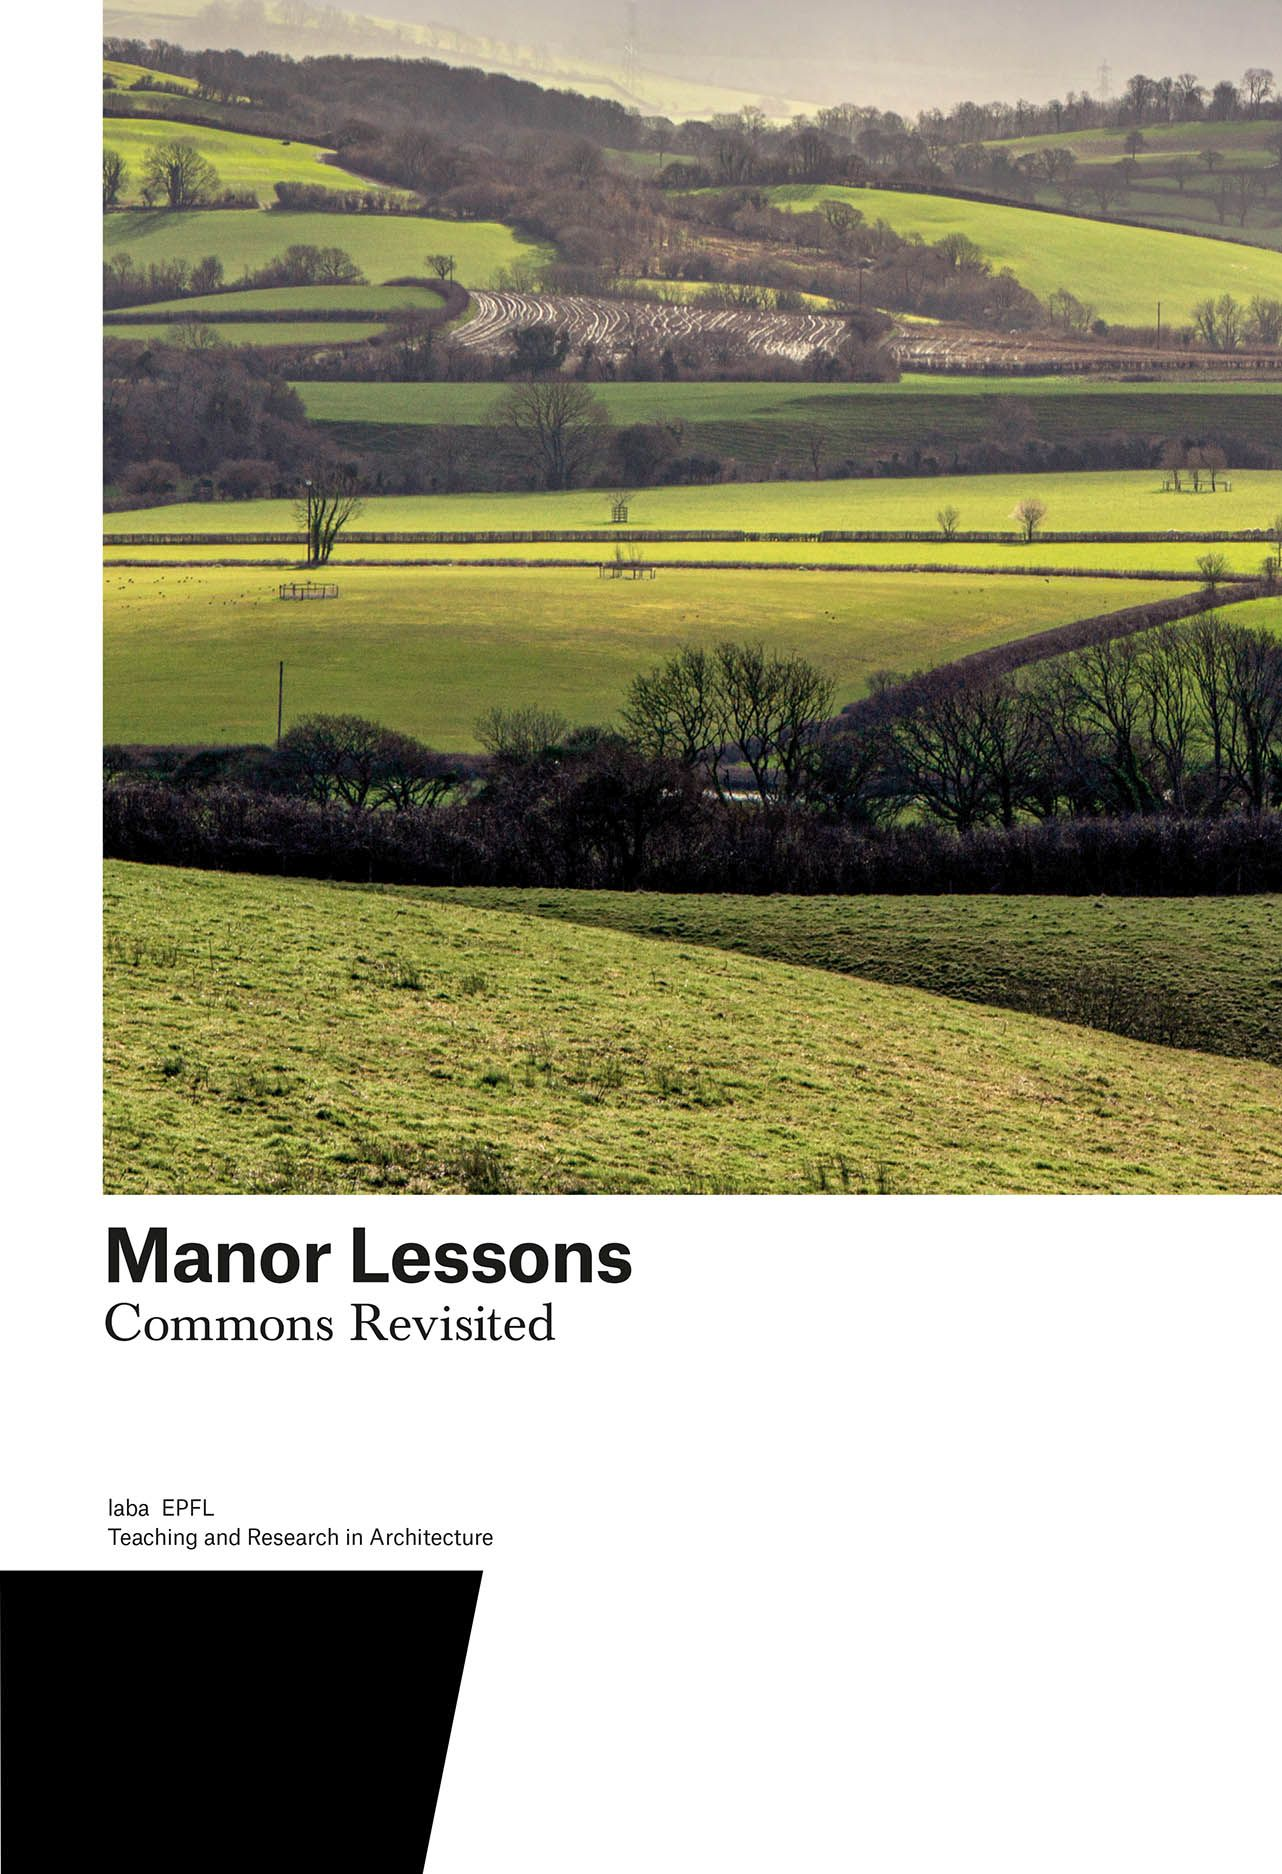 Manor Lessons